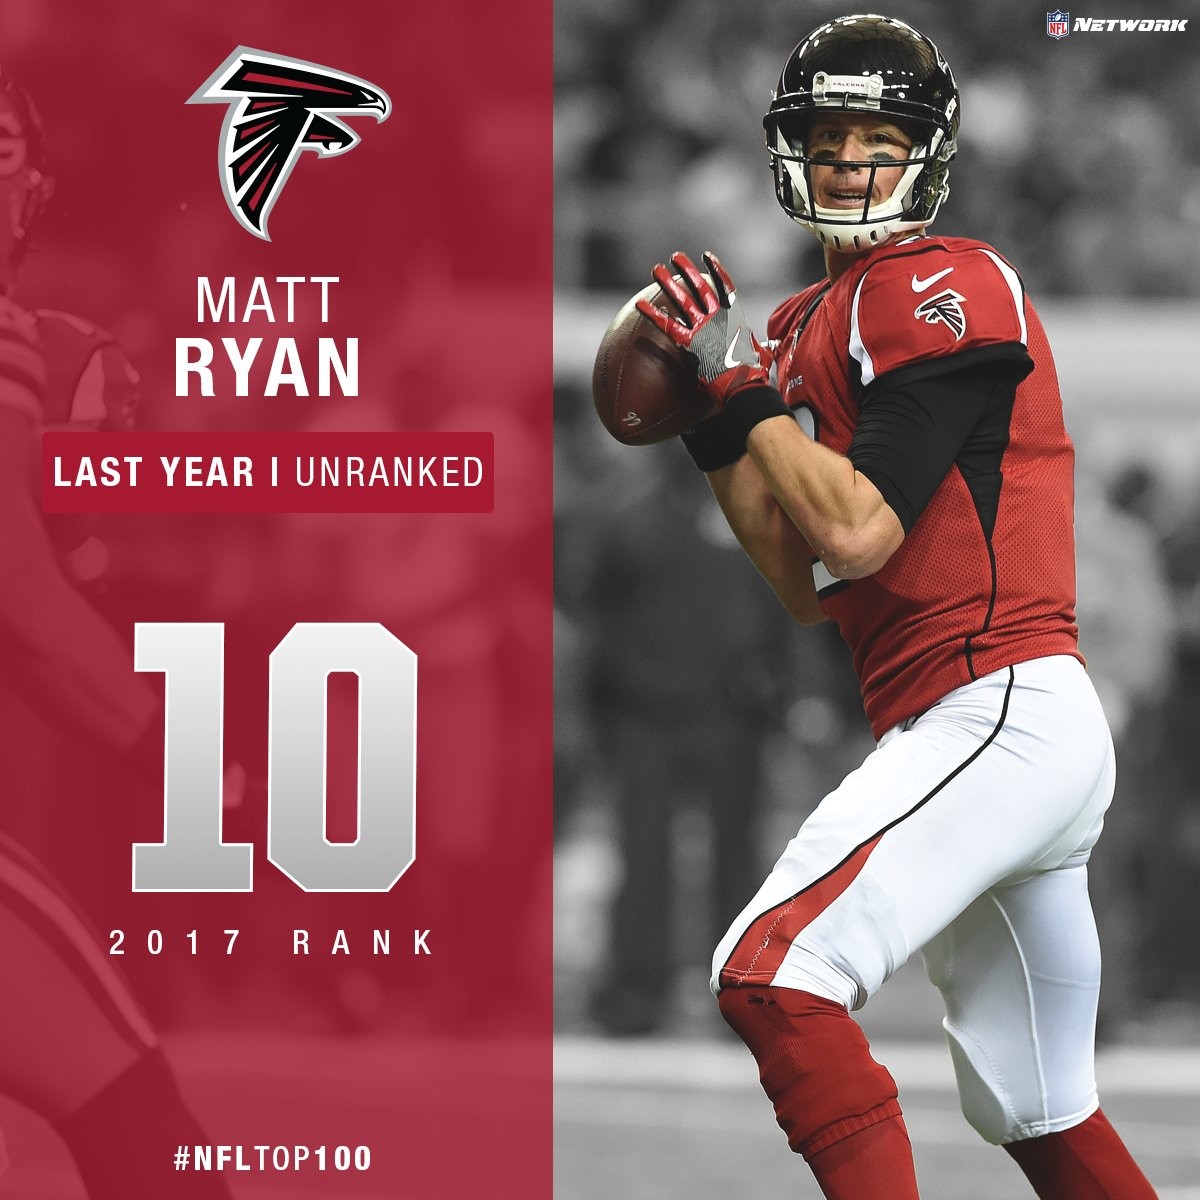 The MVP comes in at Number 10 on the #NFLTop100!